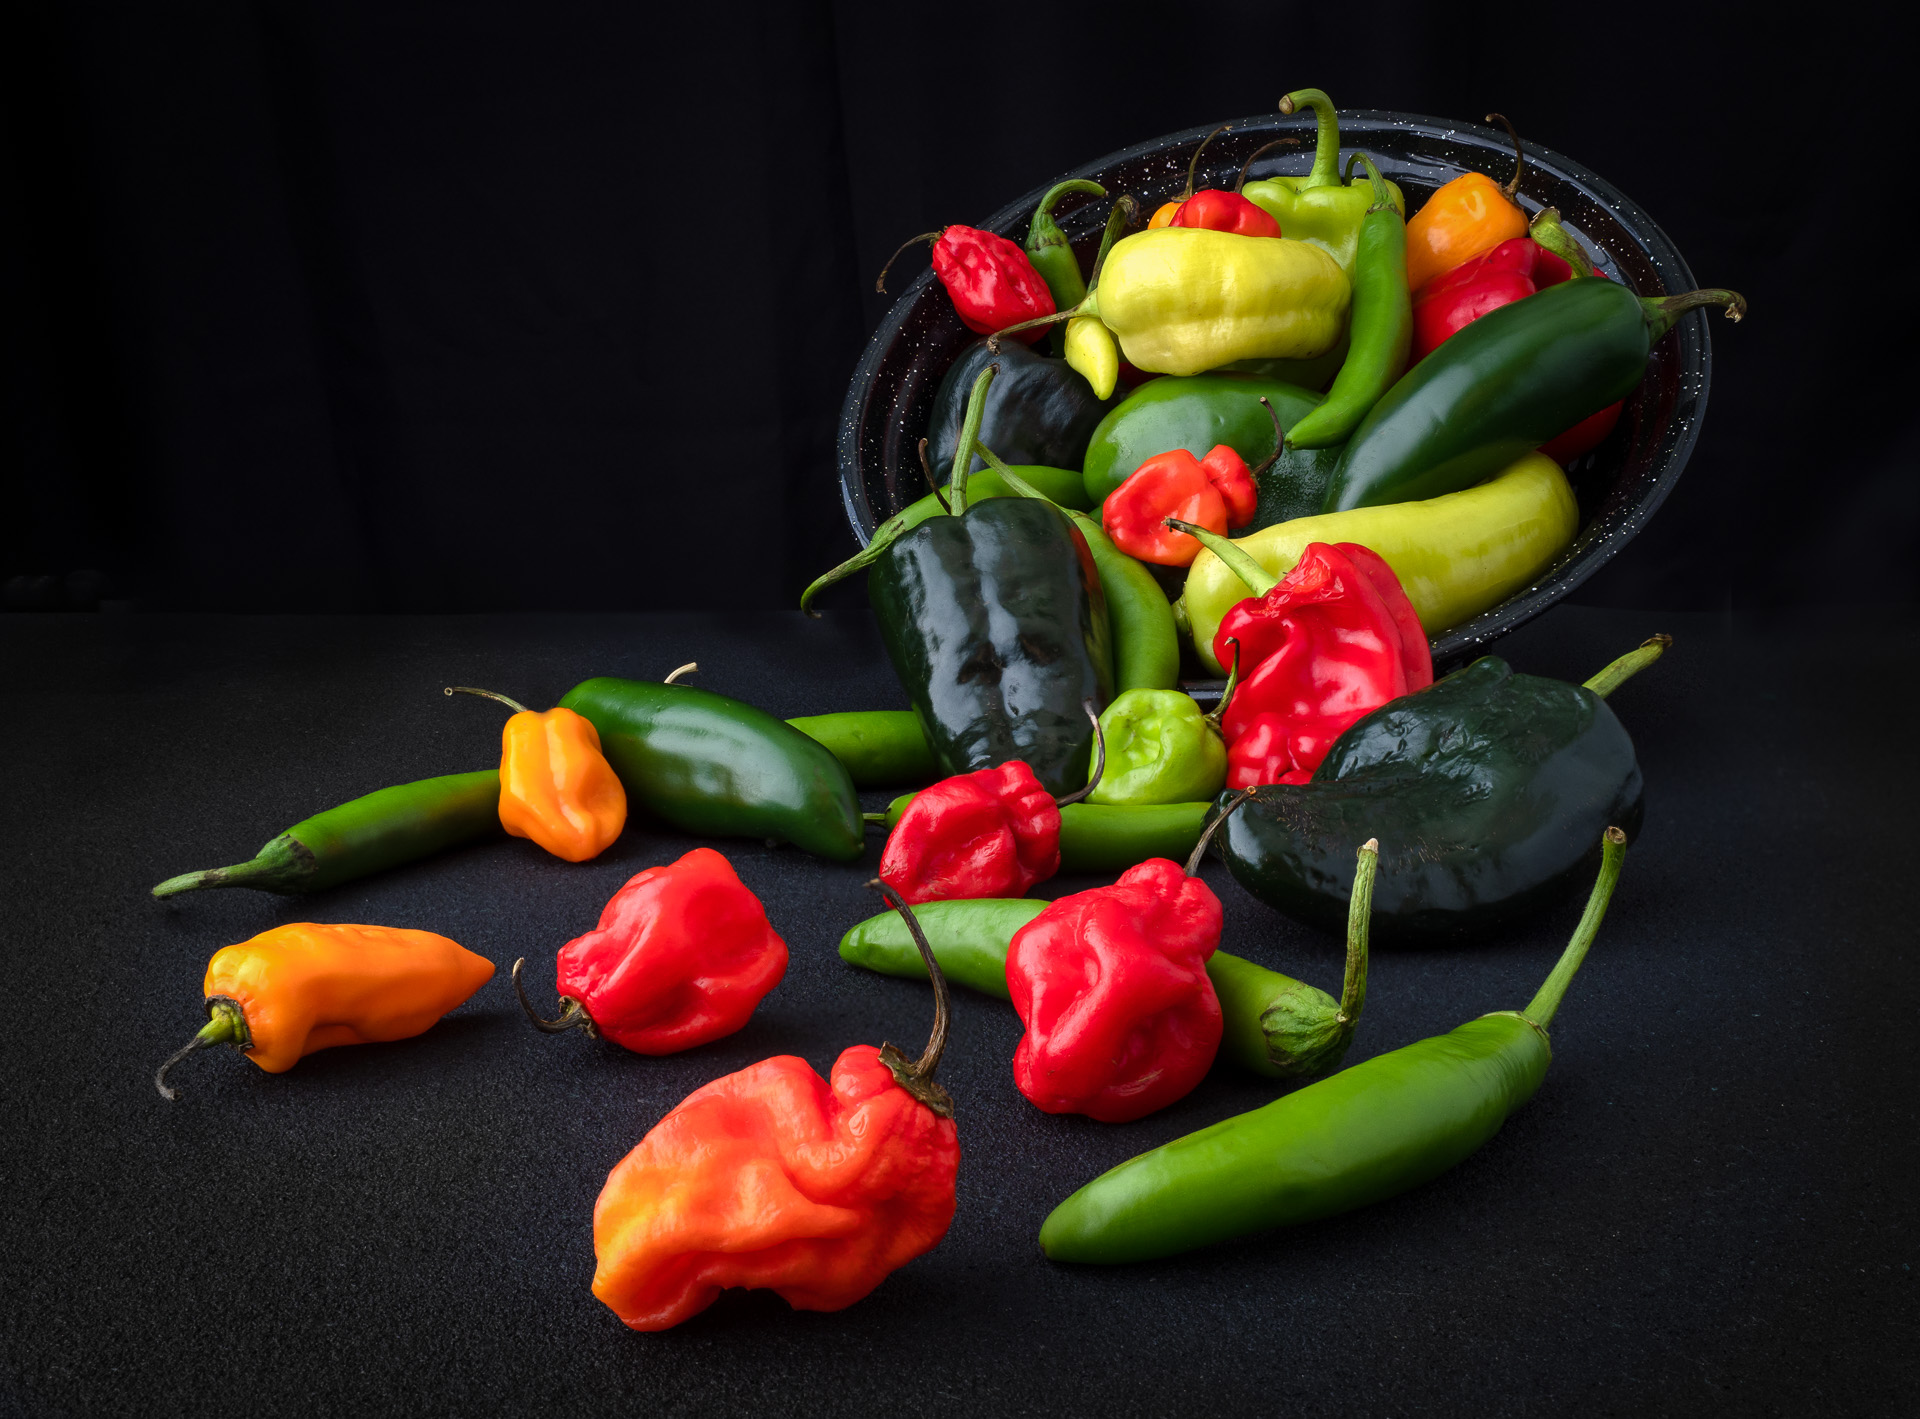 A Cornucopia of Chili Peppers